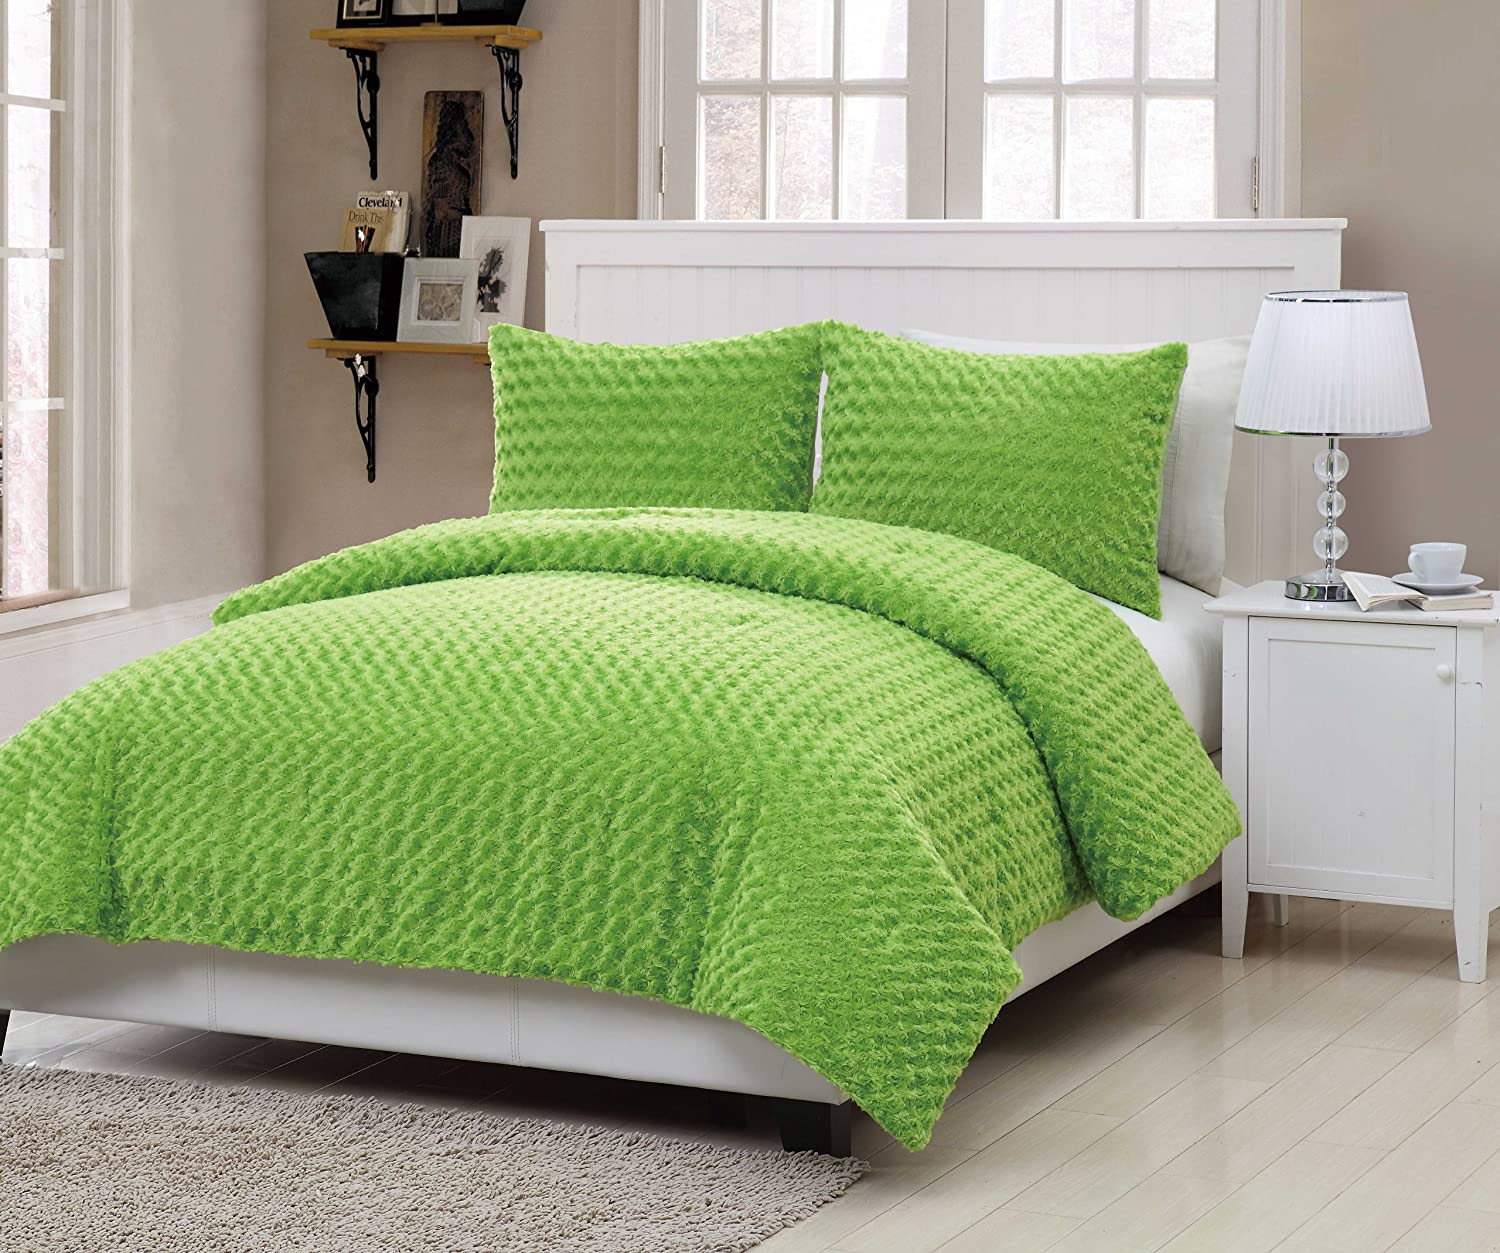 Green bedding set - Amazon Com Vcny Rose Fur 3 Piece Comforter Set Full Green Home Kitchen